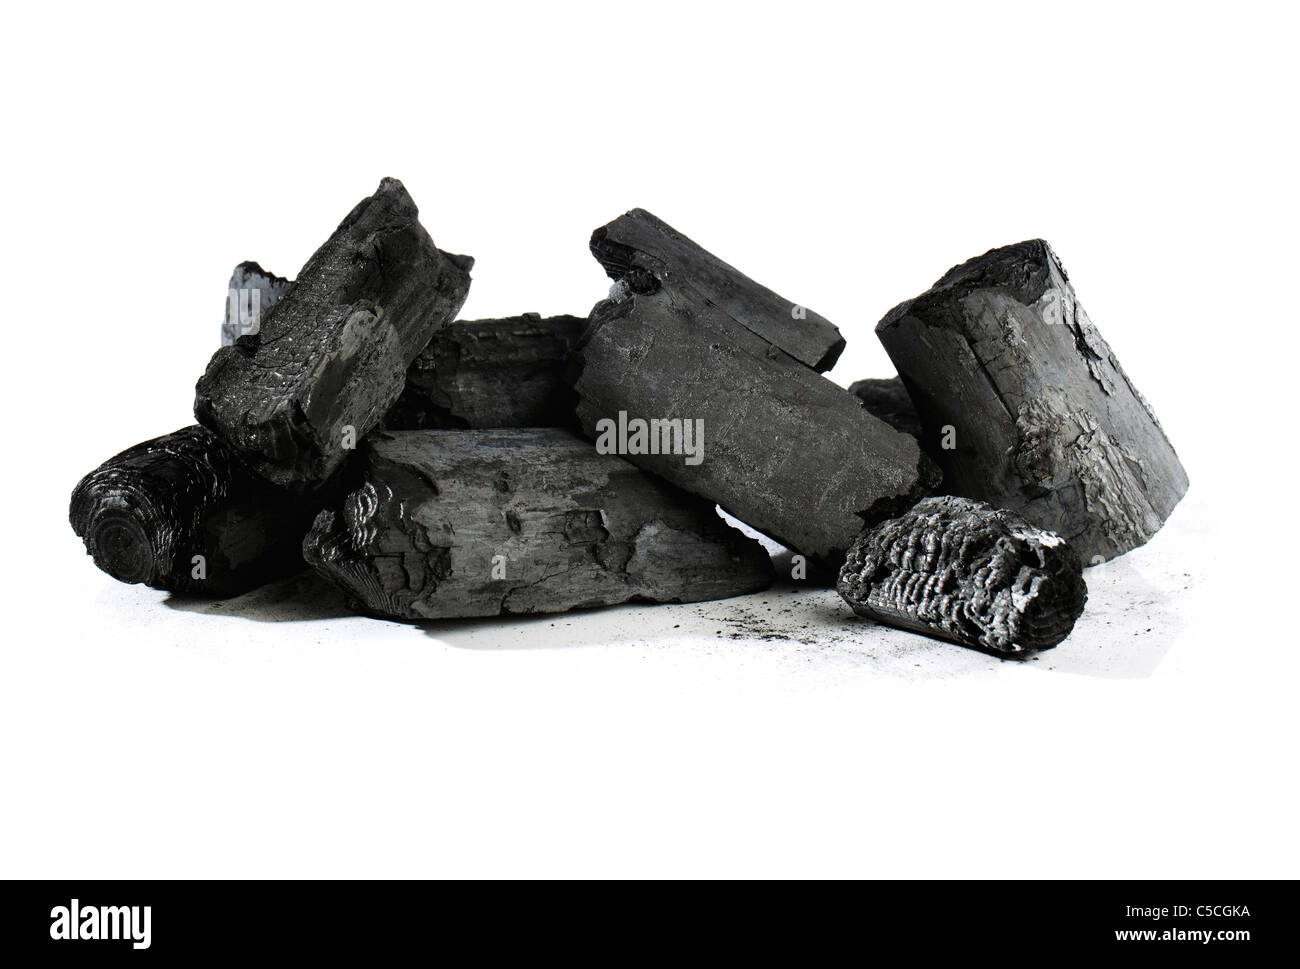 Lumps of black charcoal on white - Stock Image